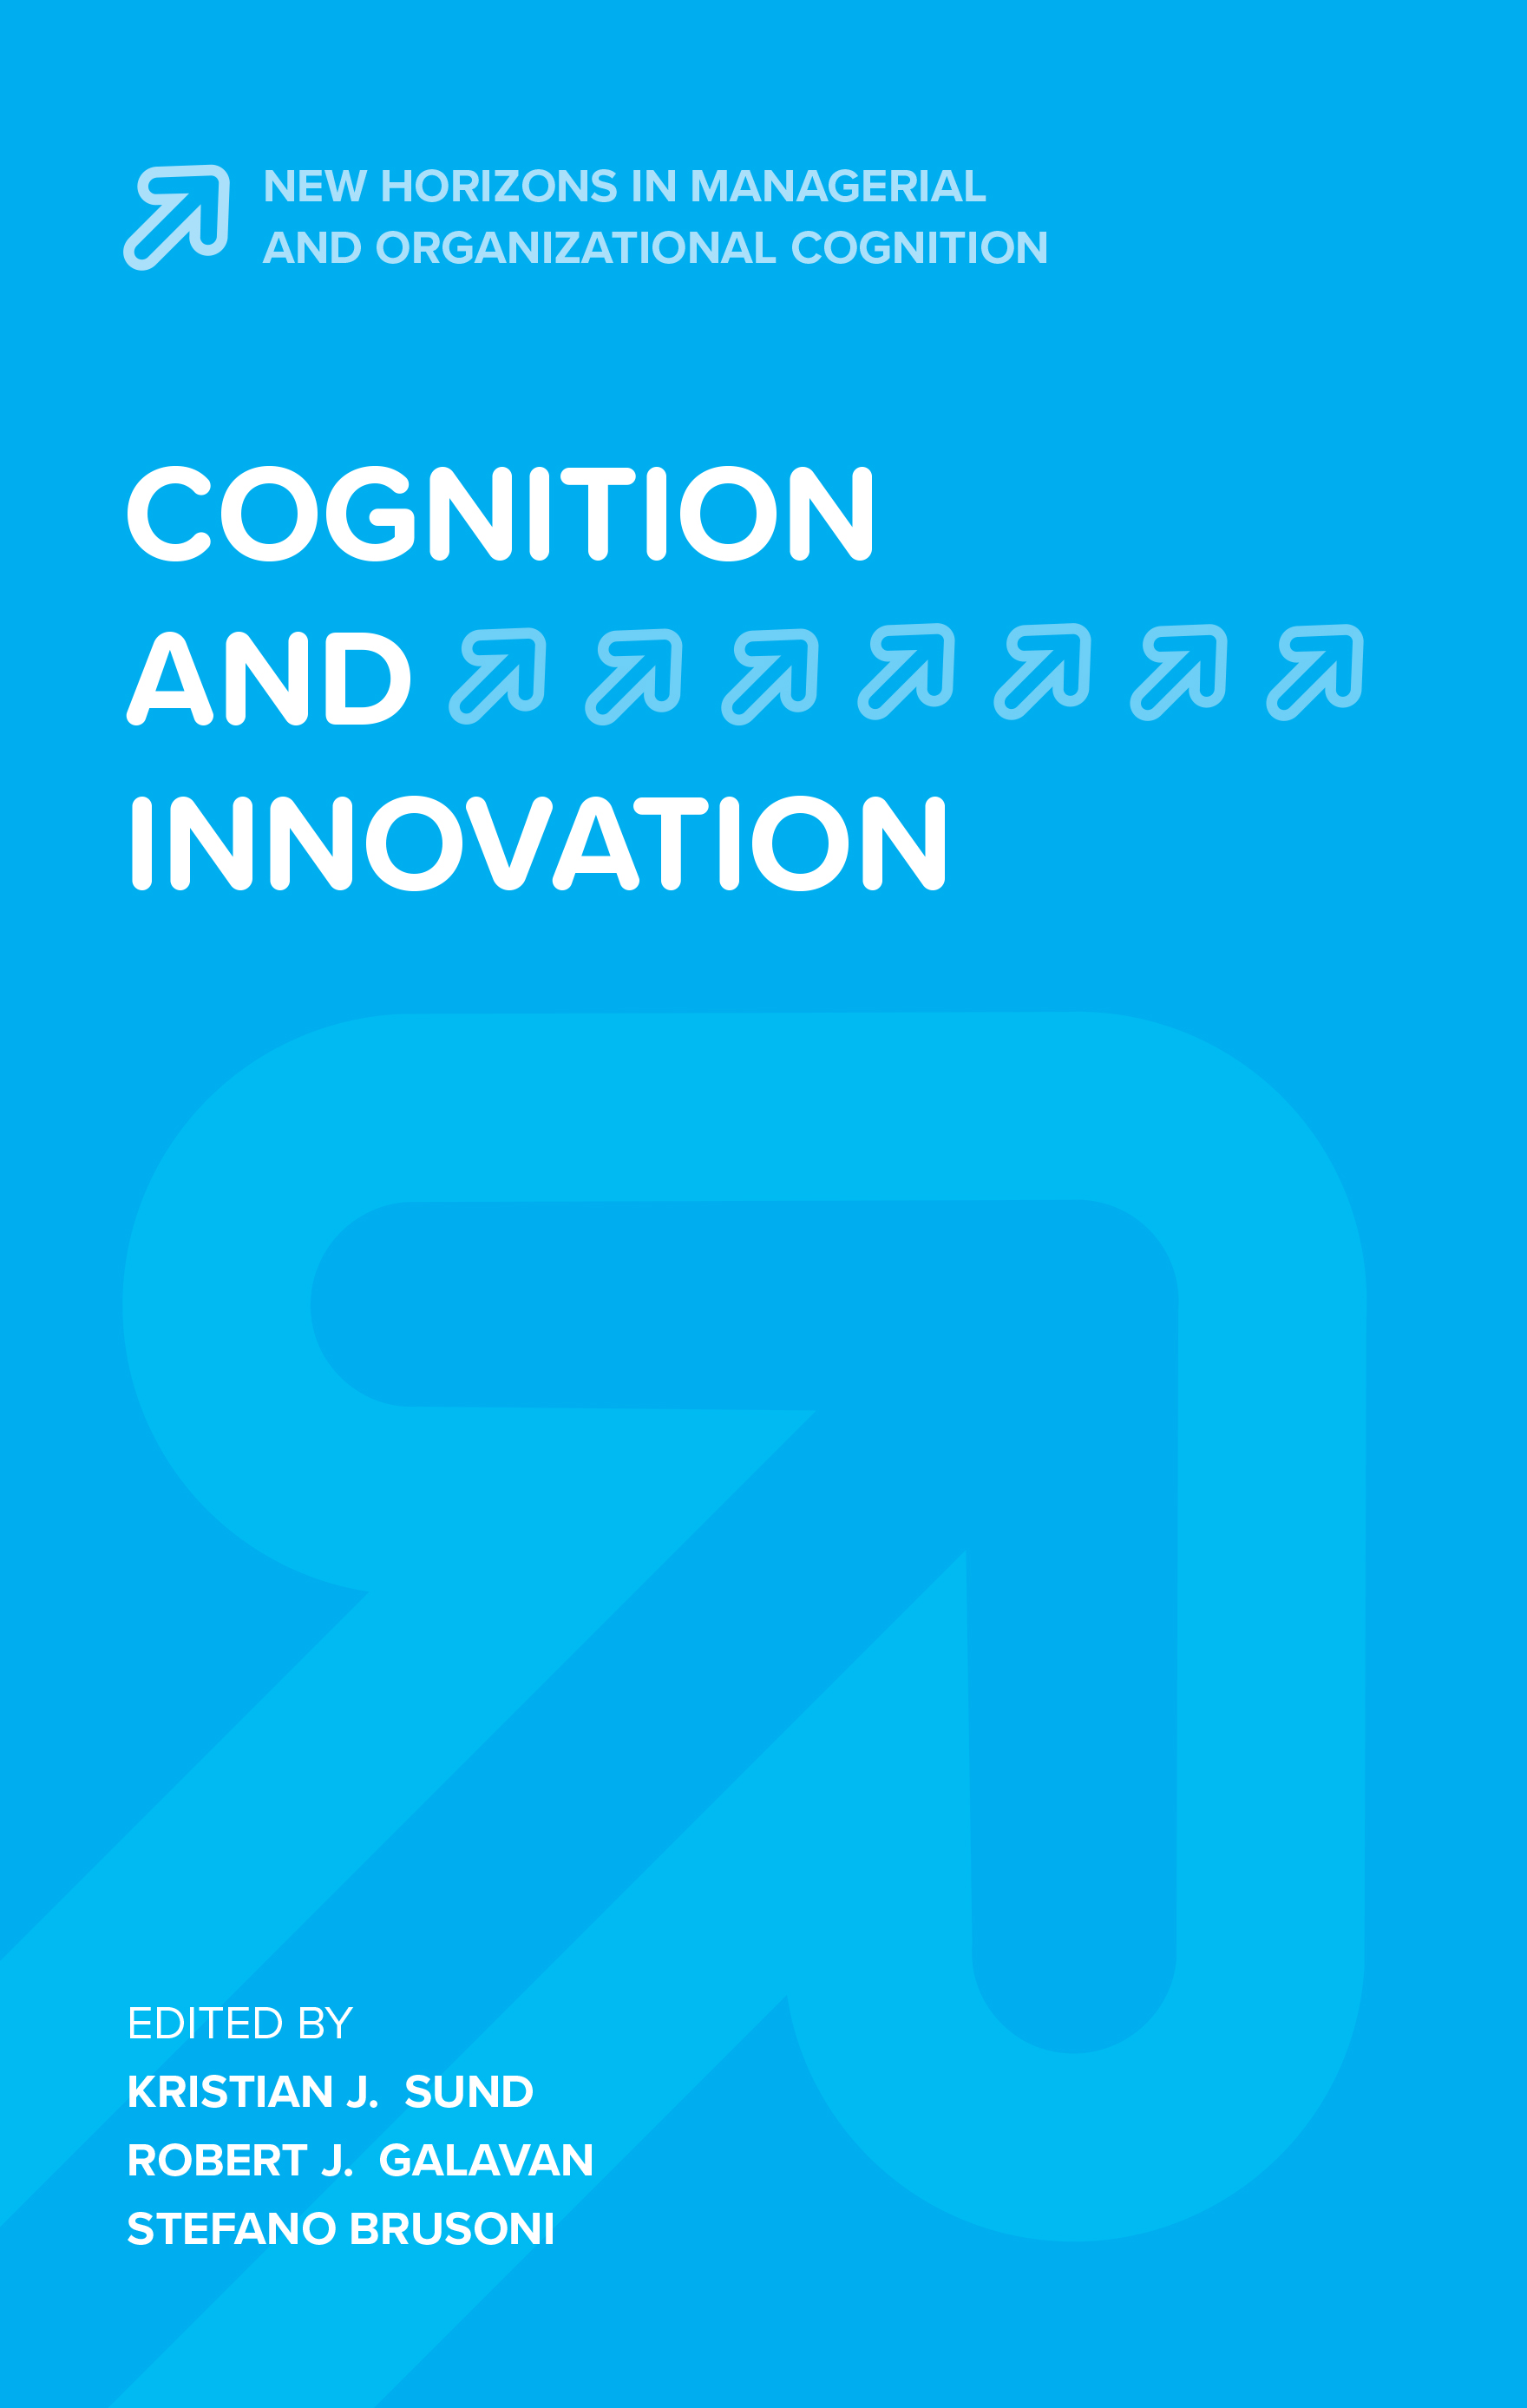 Book cover for Cognition and Innovation a book by Kristian J. Sund, Robert J. Galavan, Stefano  Brusoni